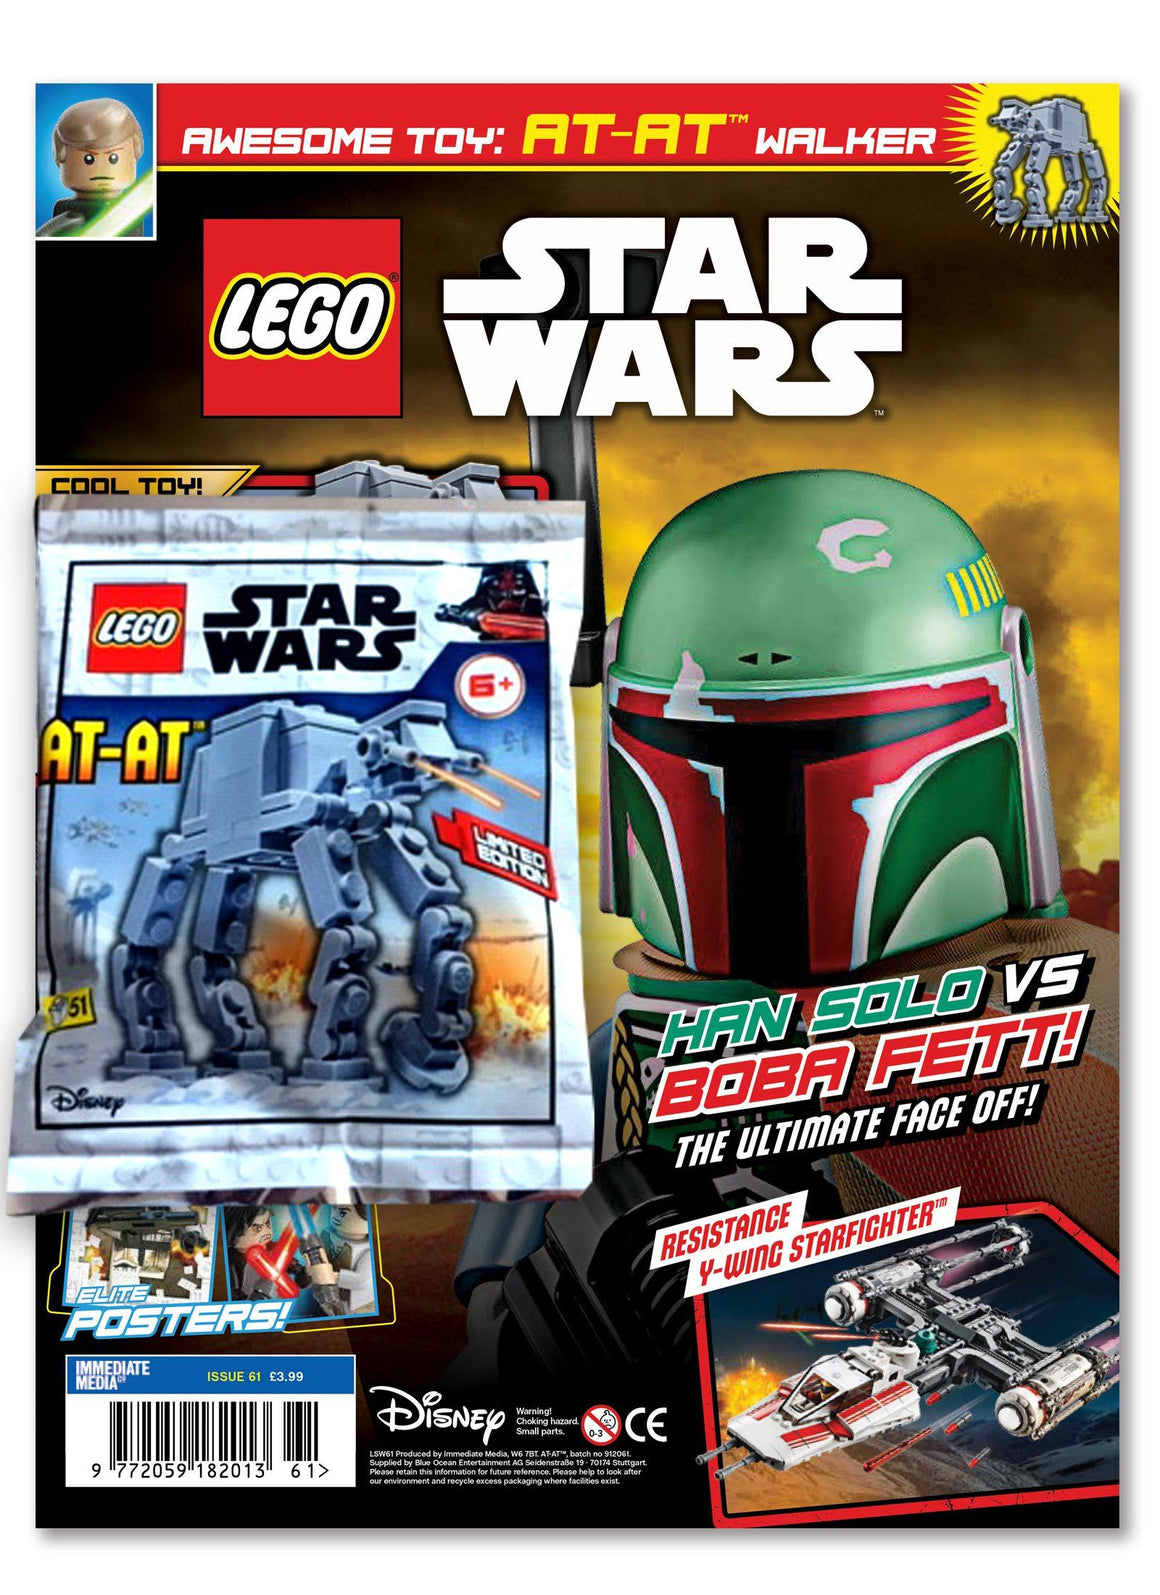 LEGO Star Wars Magazine Issue 61 - Gifted Magazine 5 Minute Fun Shop